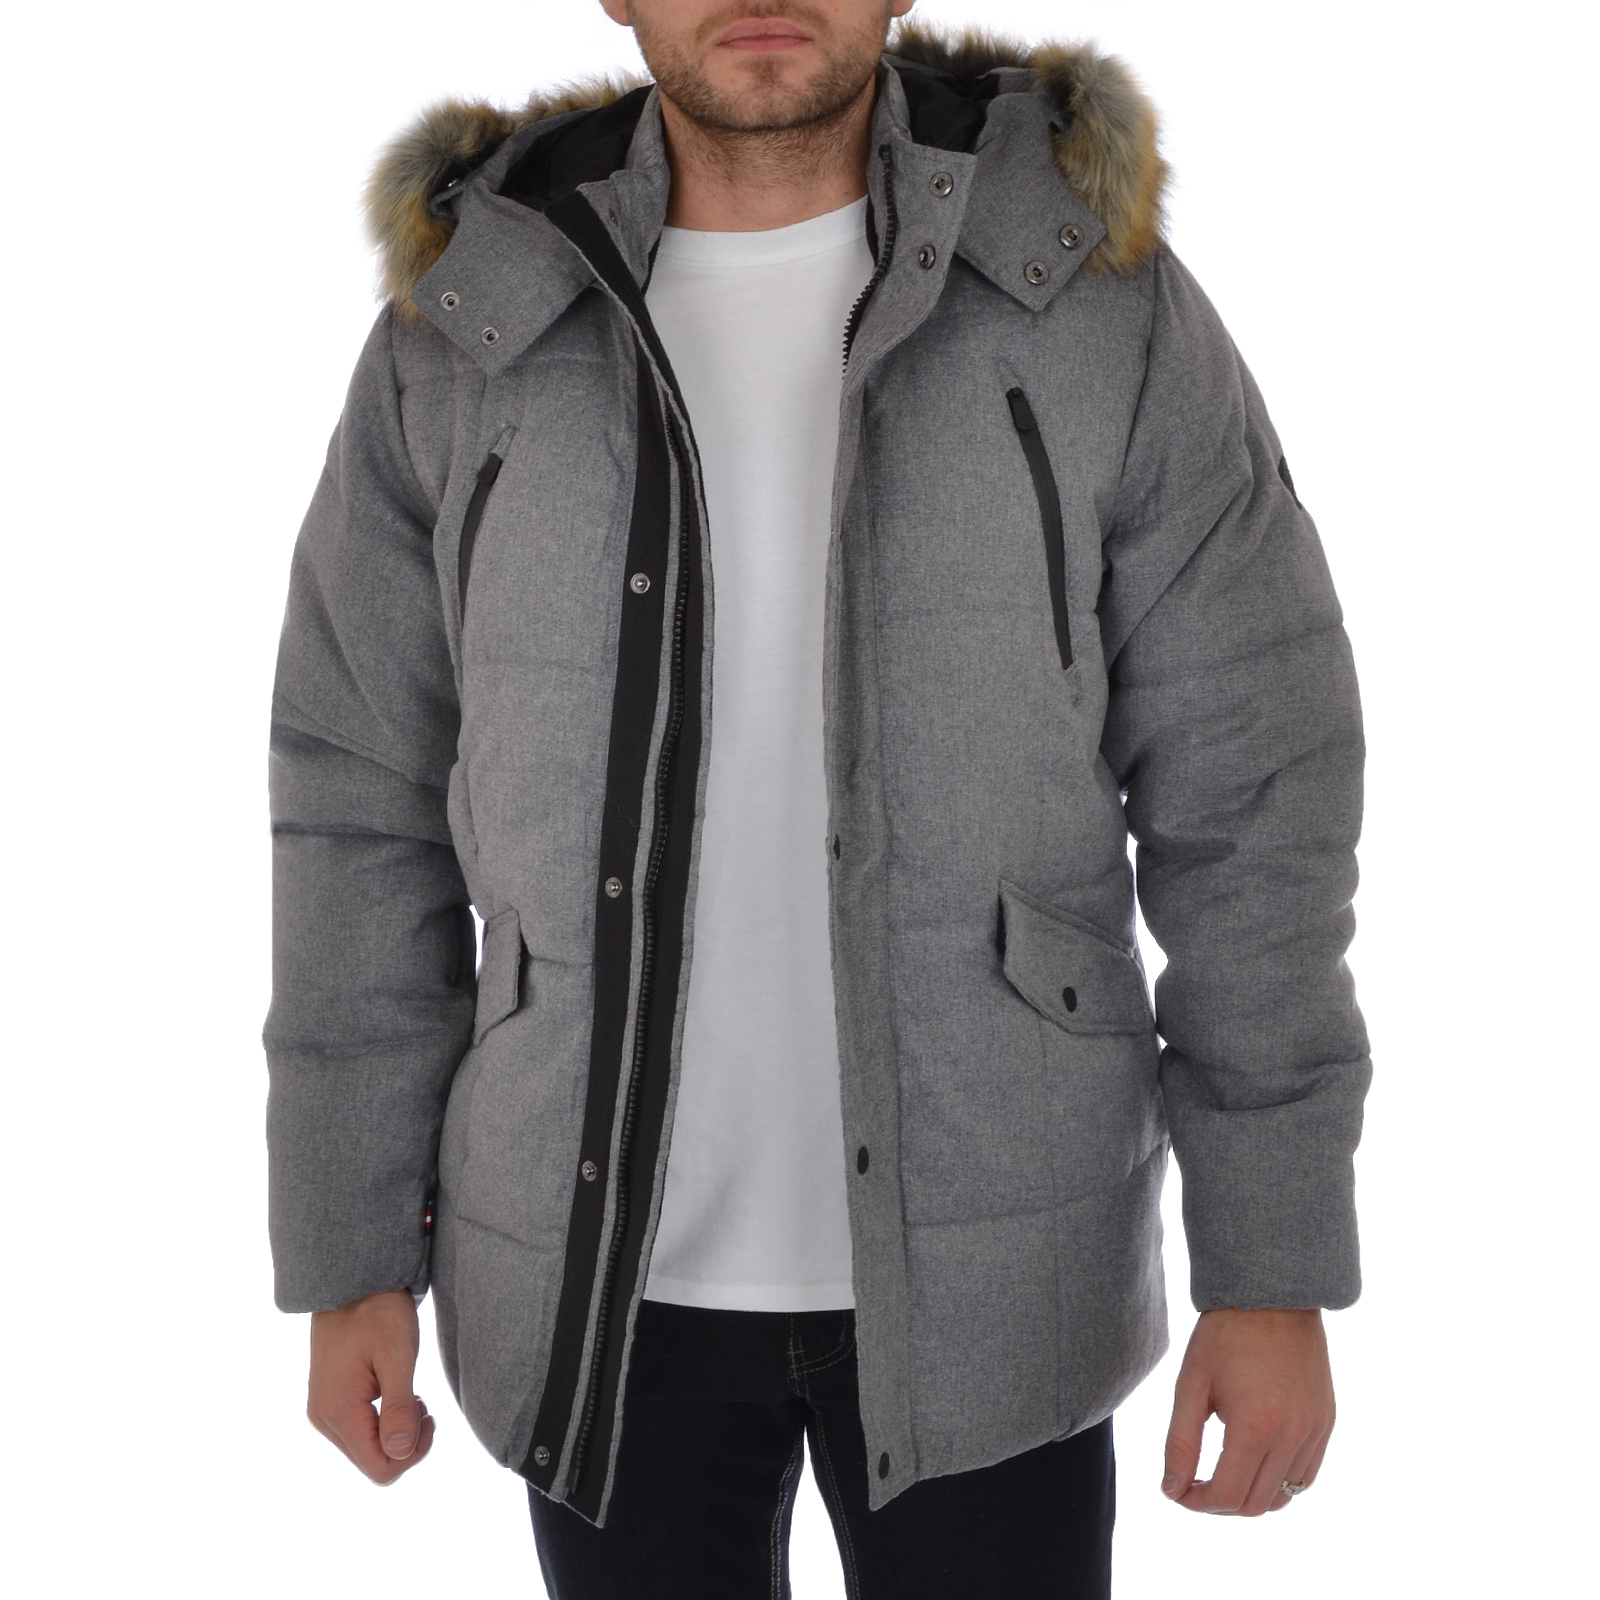 Puffa Mens Faux Fur Hooded Parka Jacket Padded Quilted Winter Coat ...